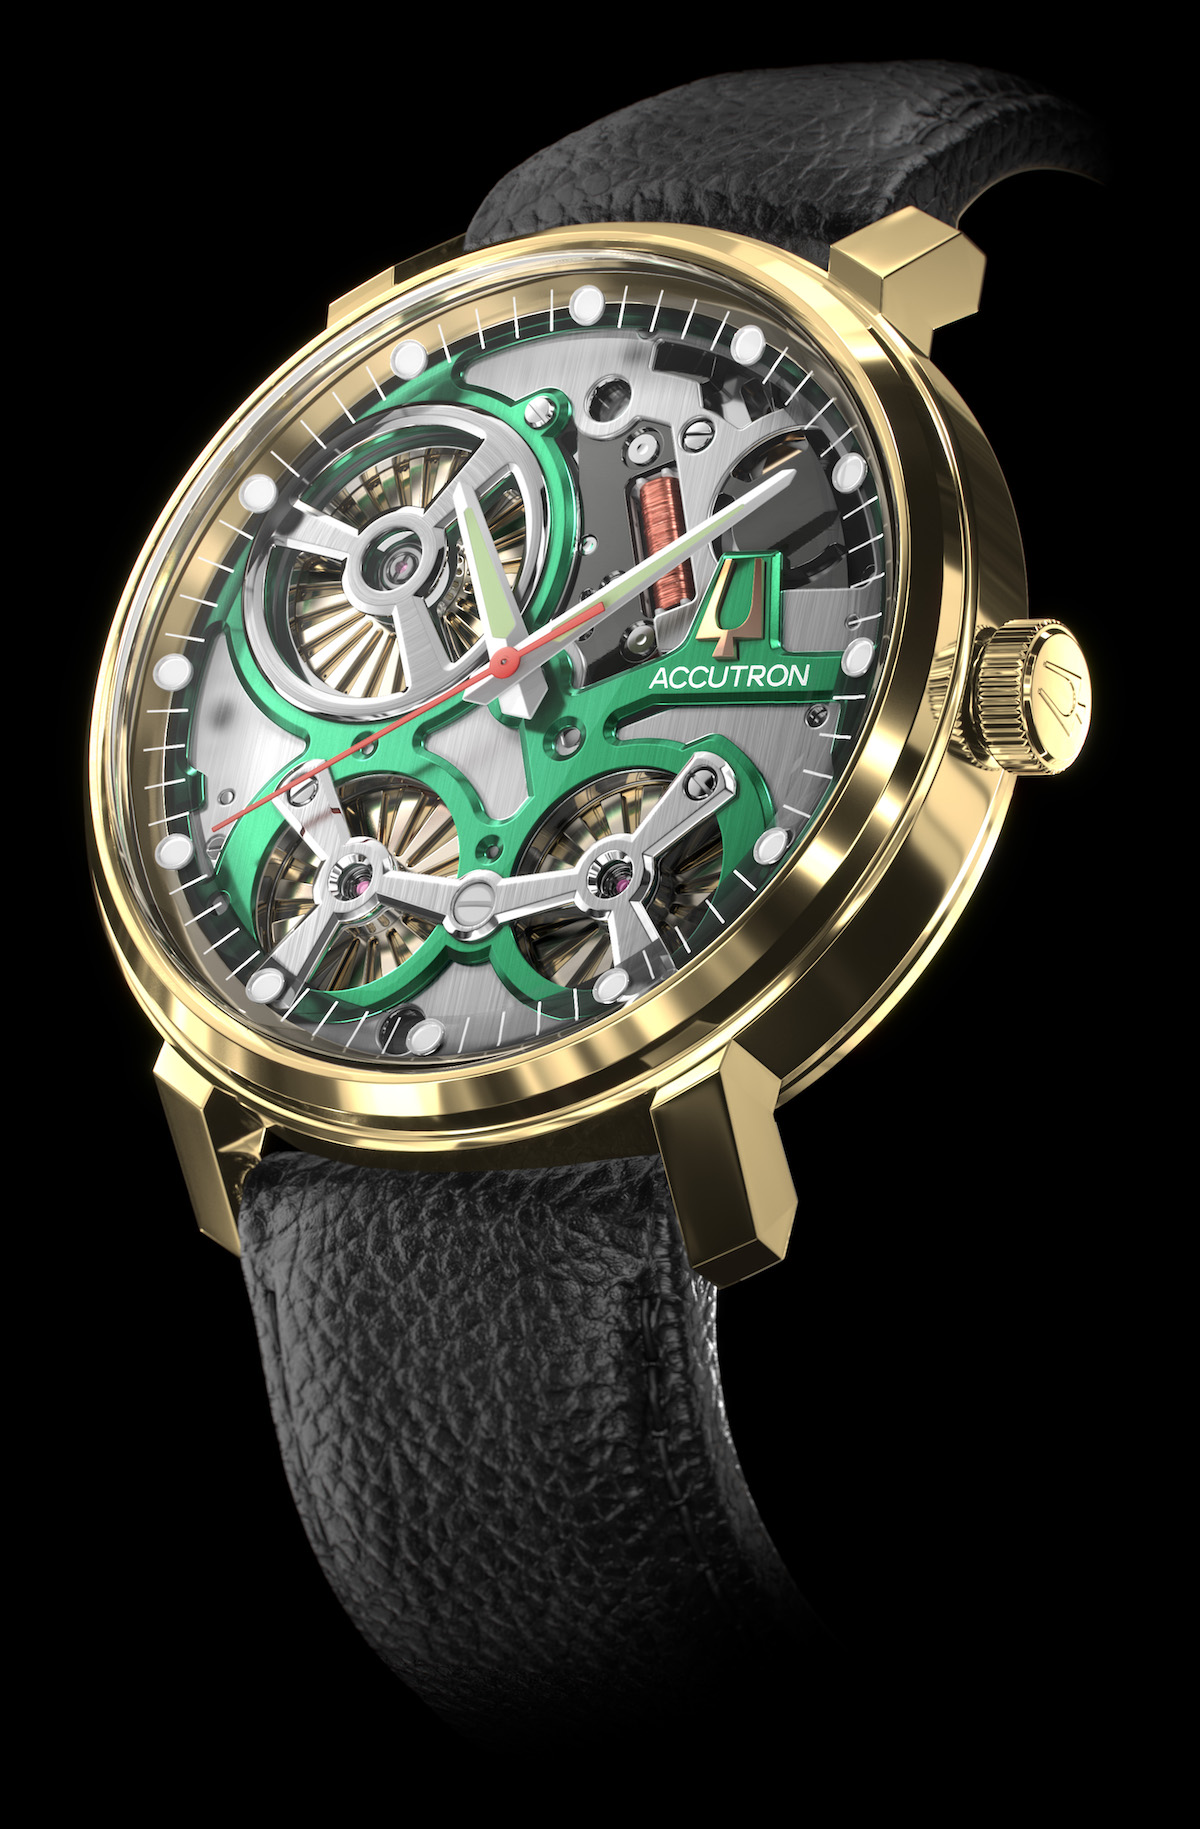 Accutron Spaceview watch with electrostatic energy movement.